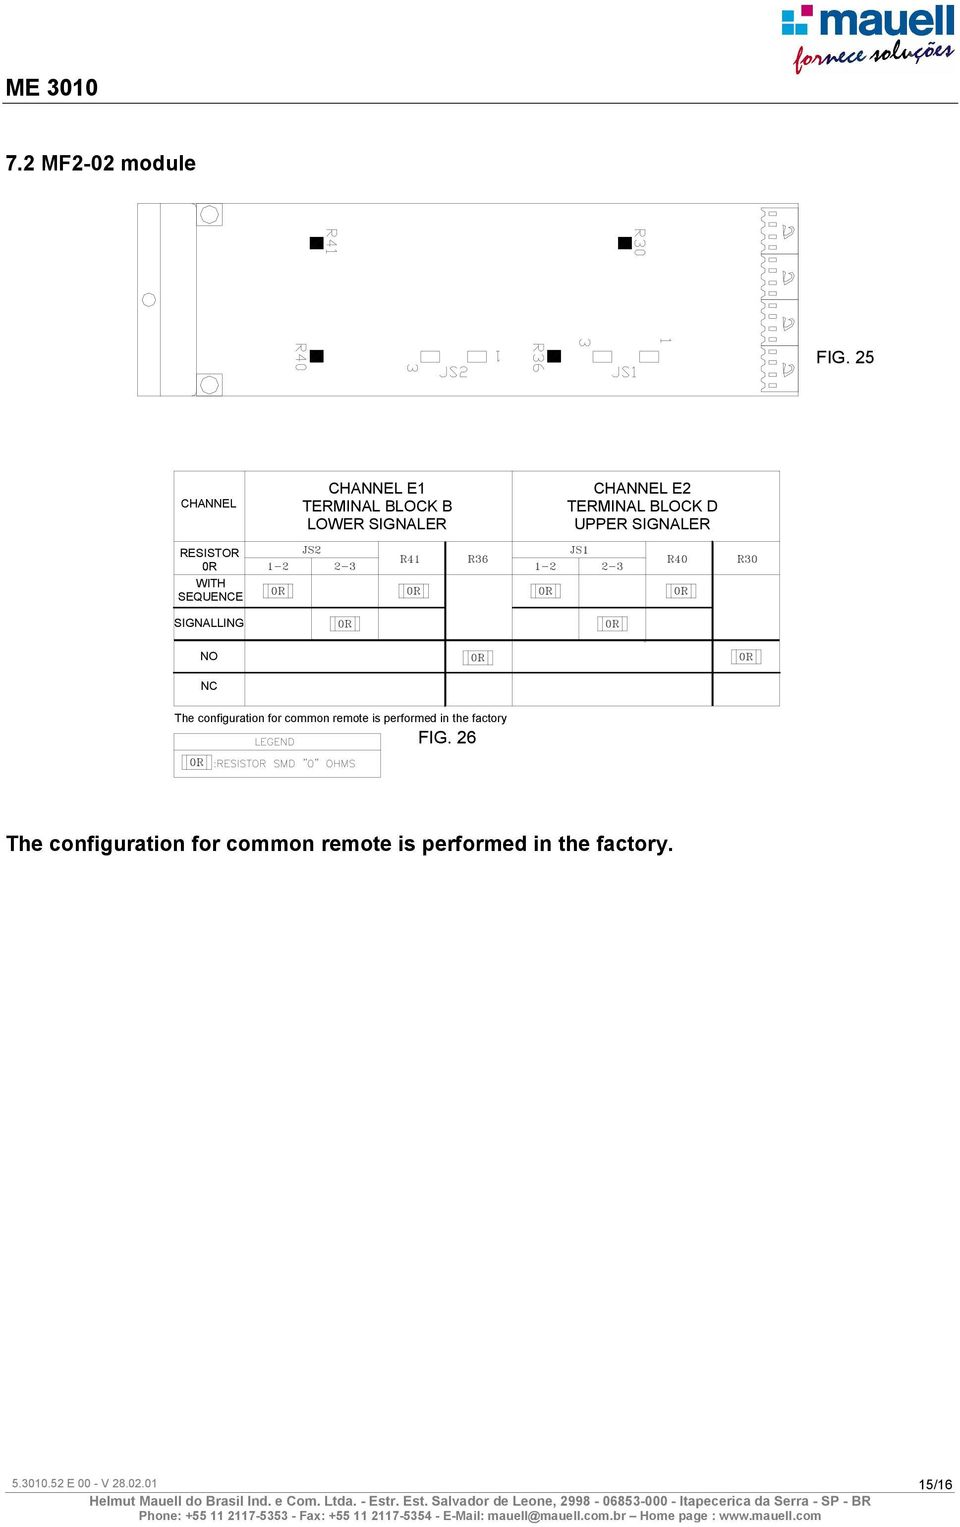 hight resolution of signaler channel e2 terminal block d upper signaler no nc the configuration for